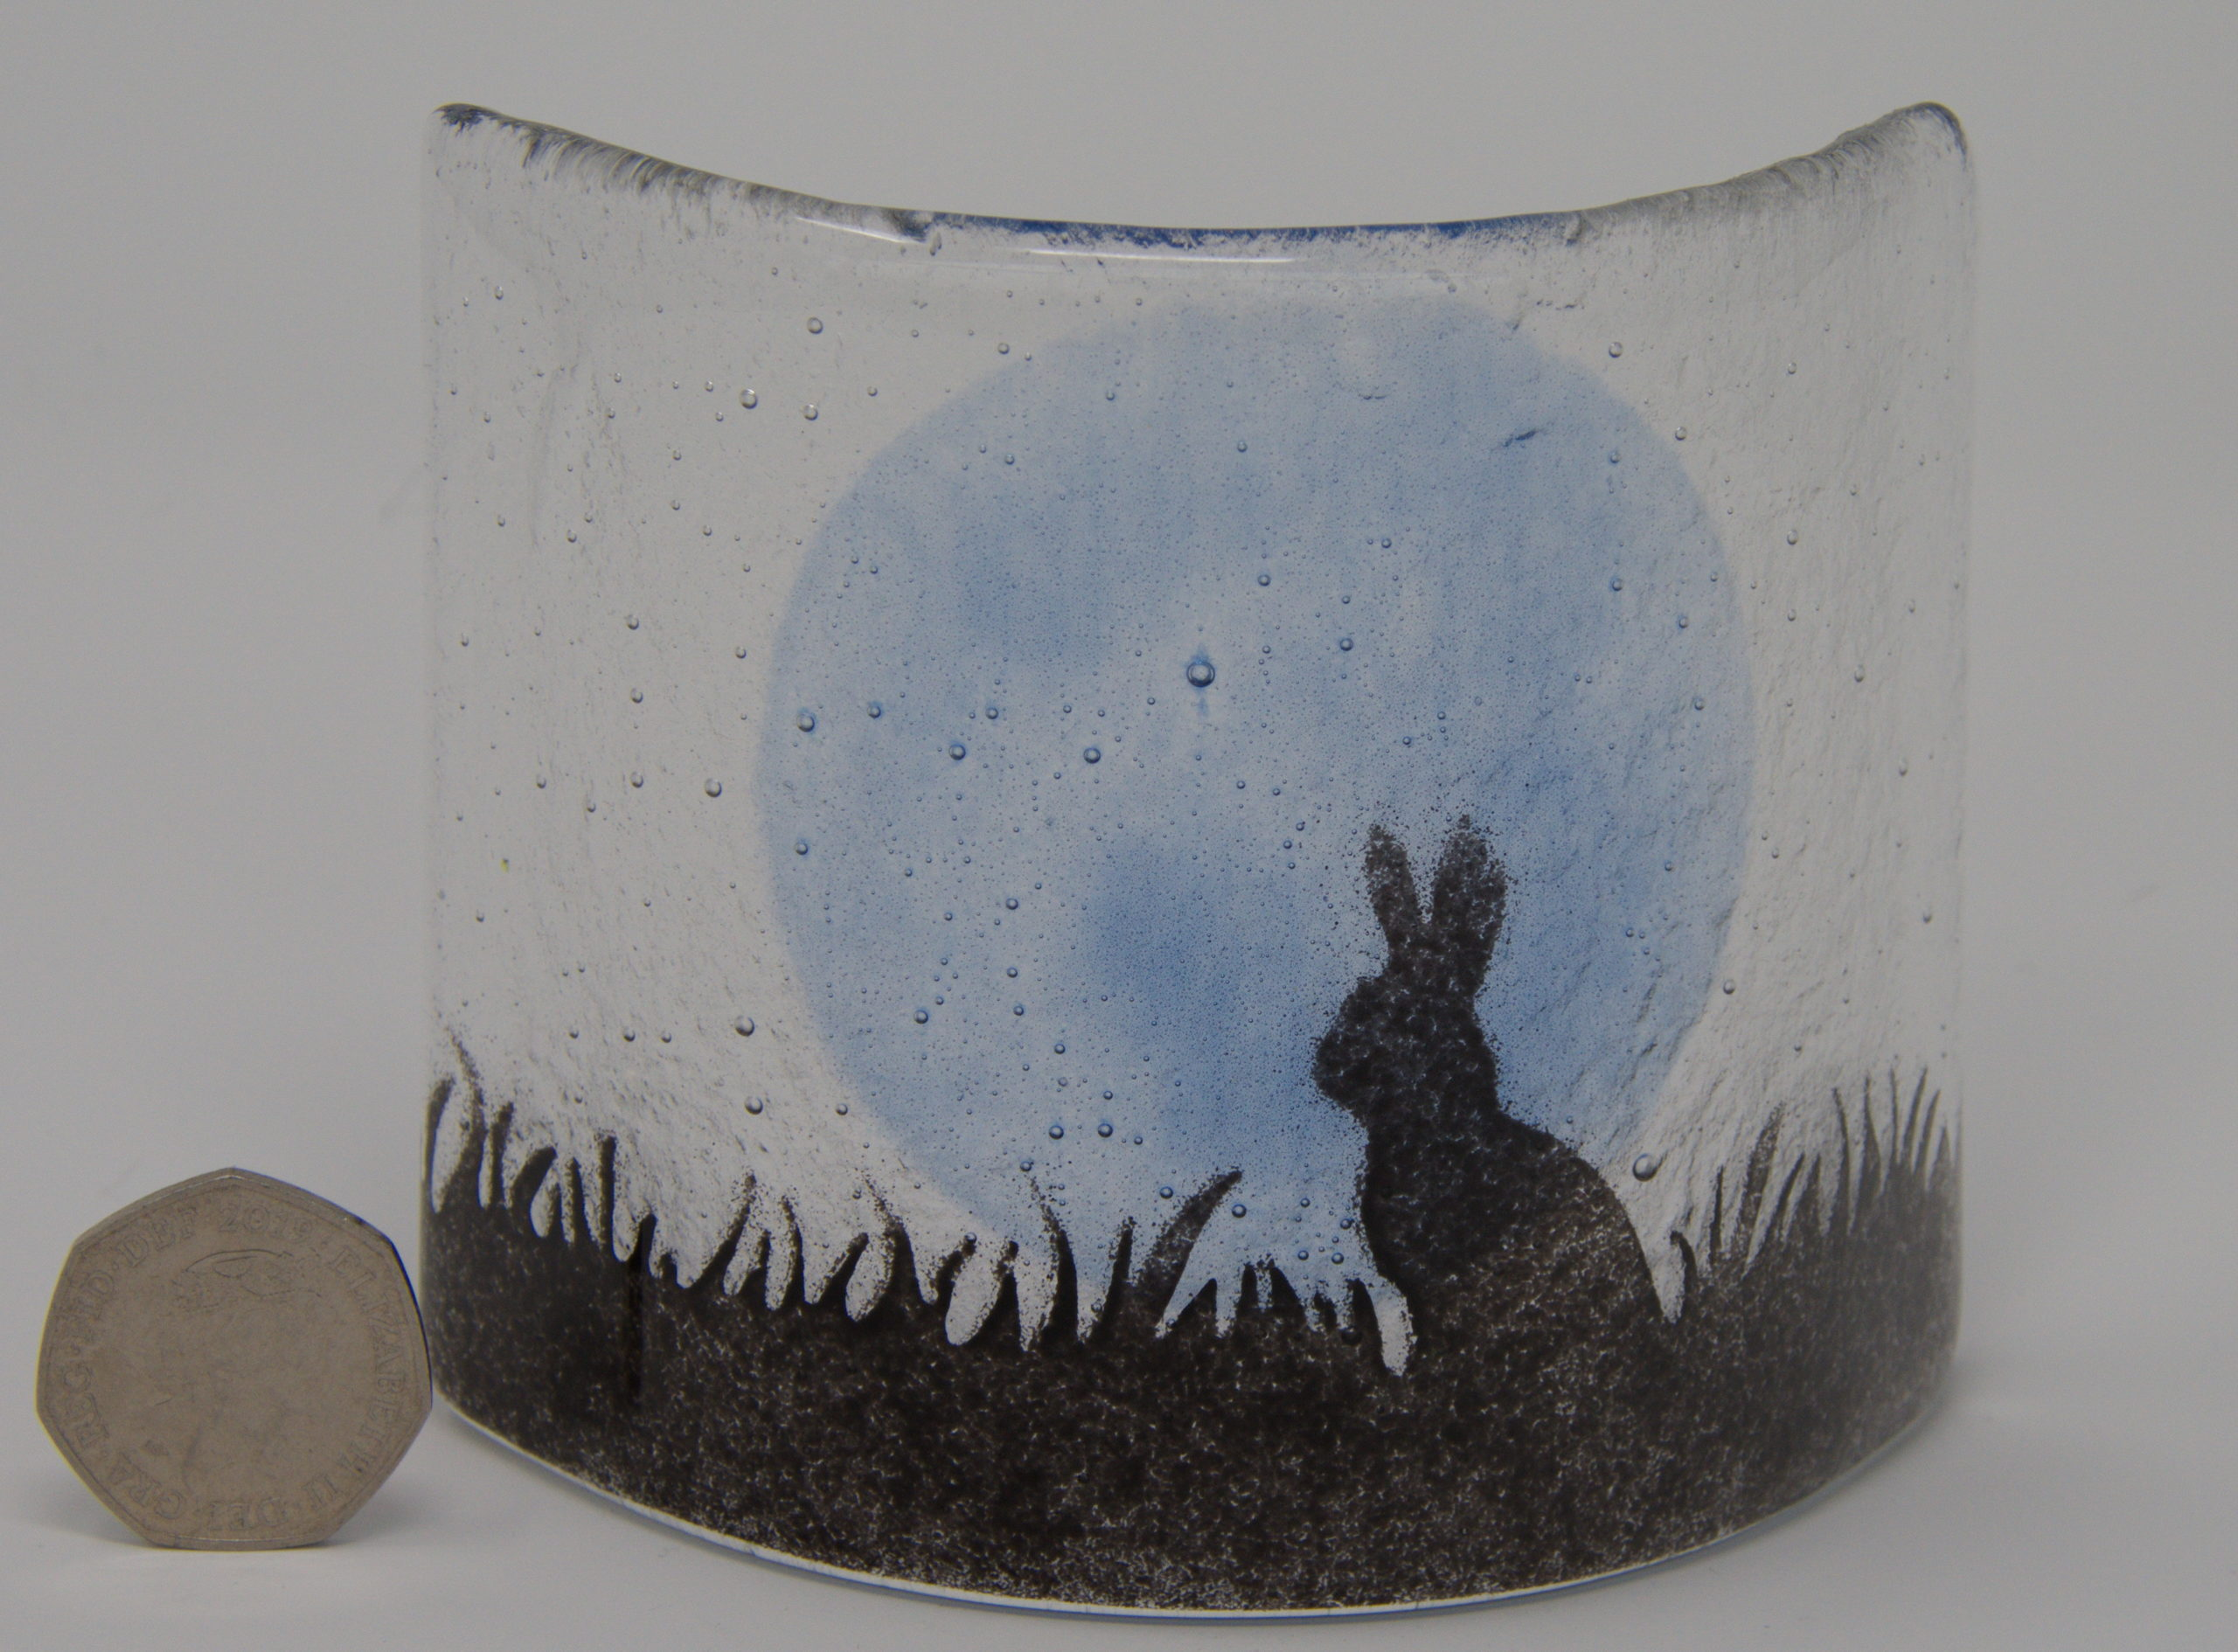 Hare in front of a full moon